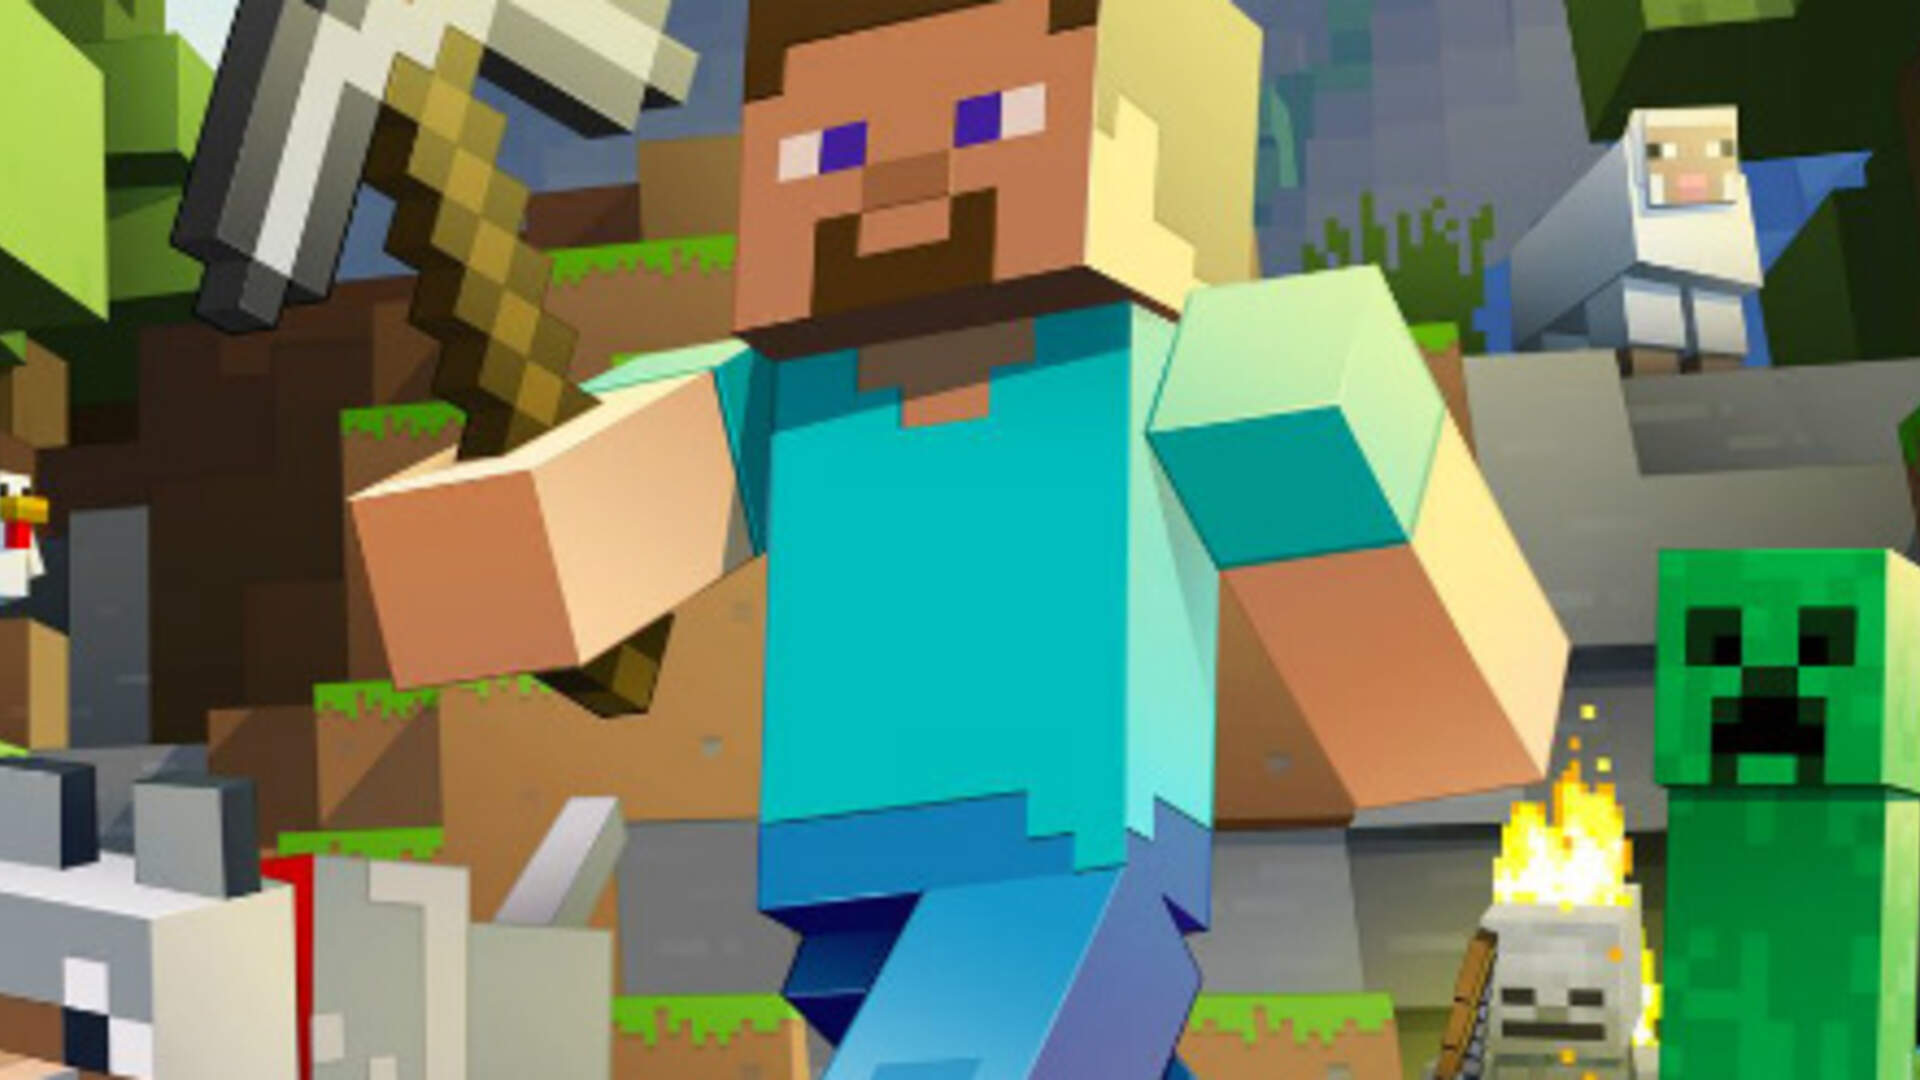 Minecraft Story Mode Is a Chance for Minecraft and Telltale to Expand